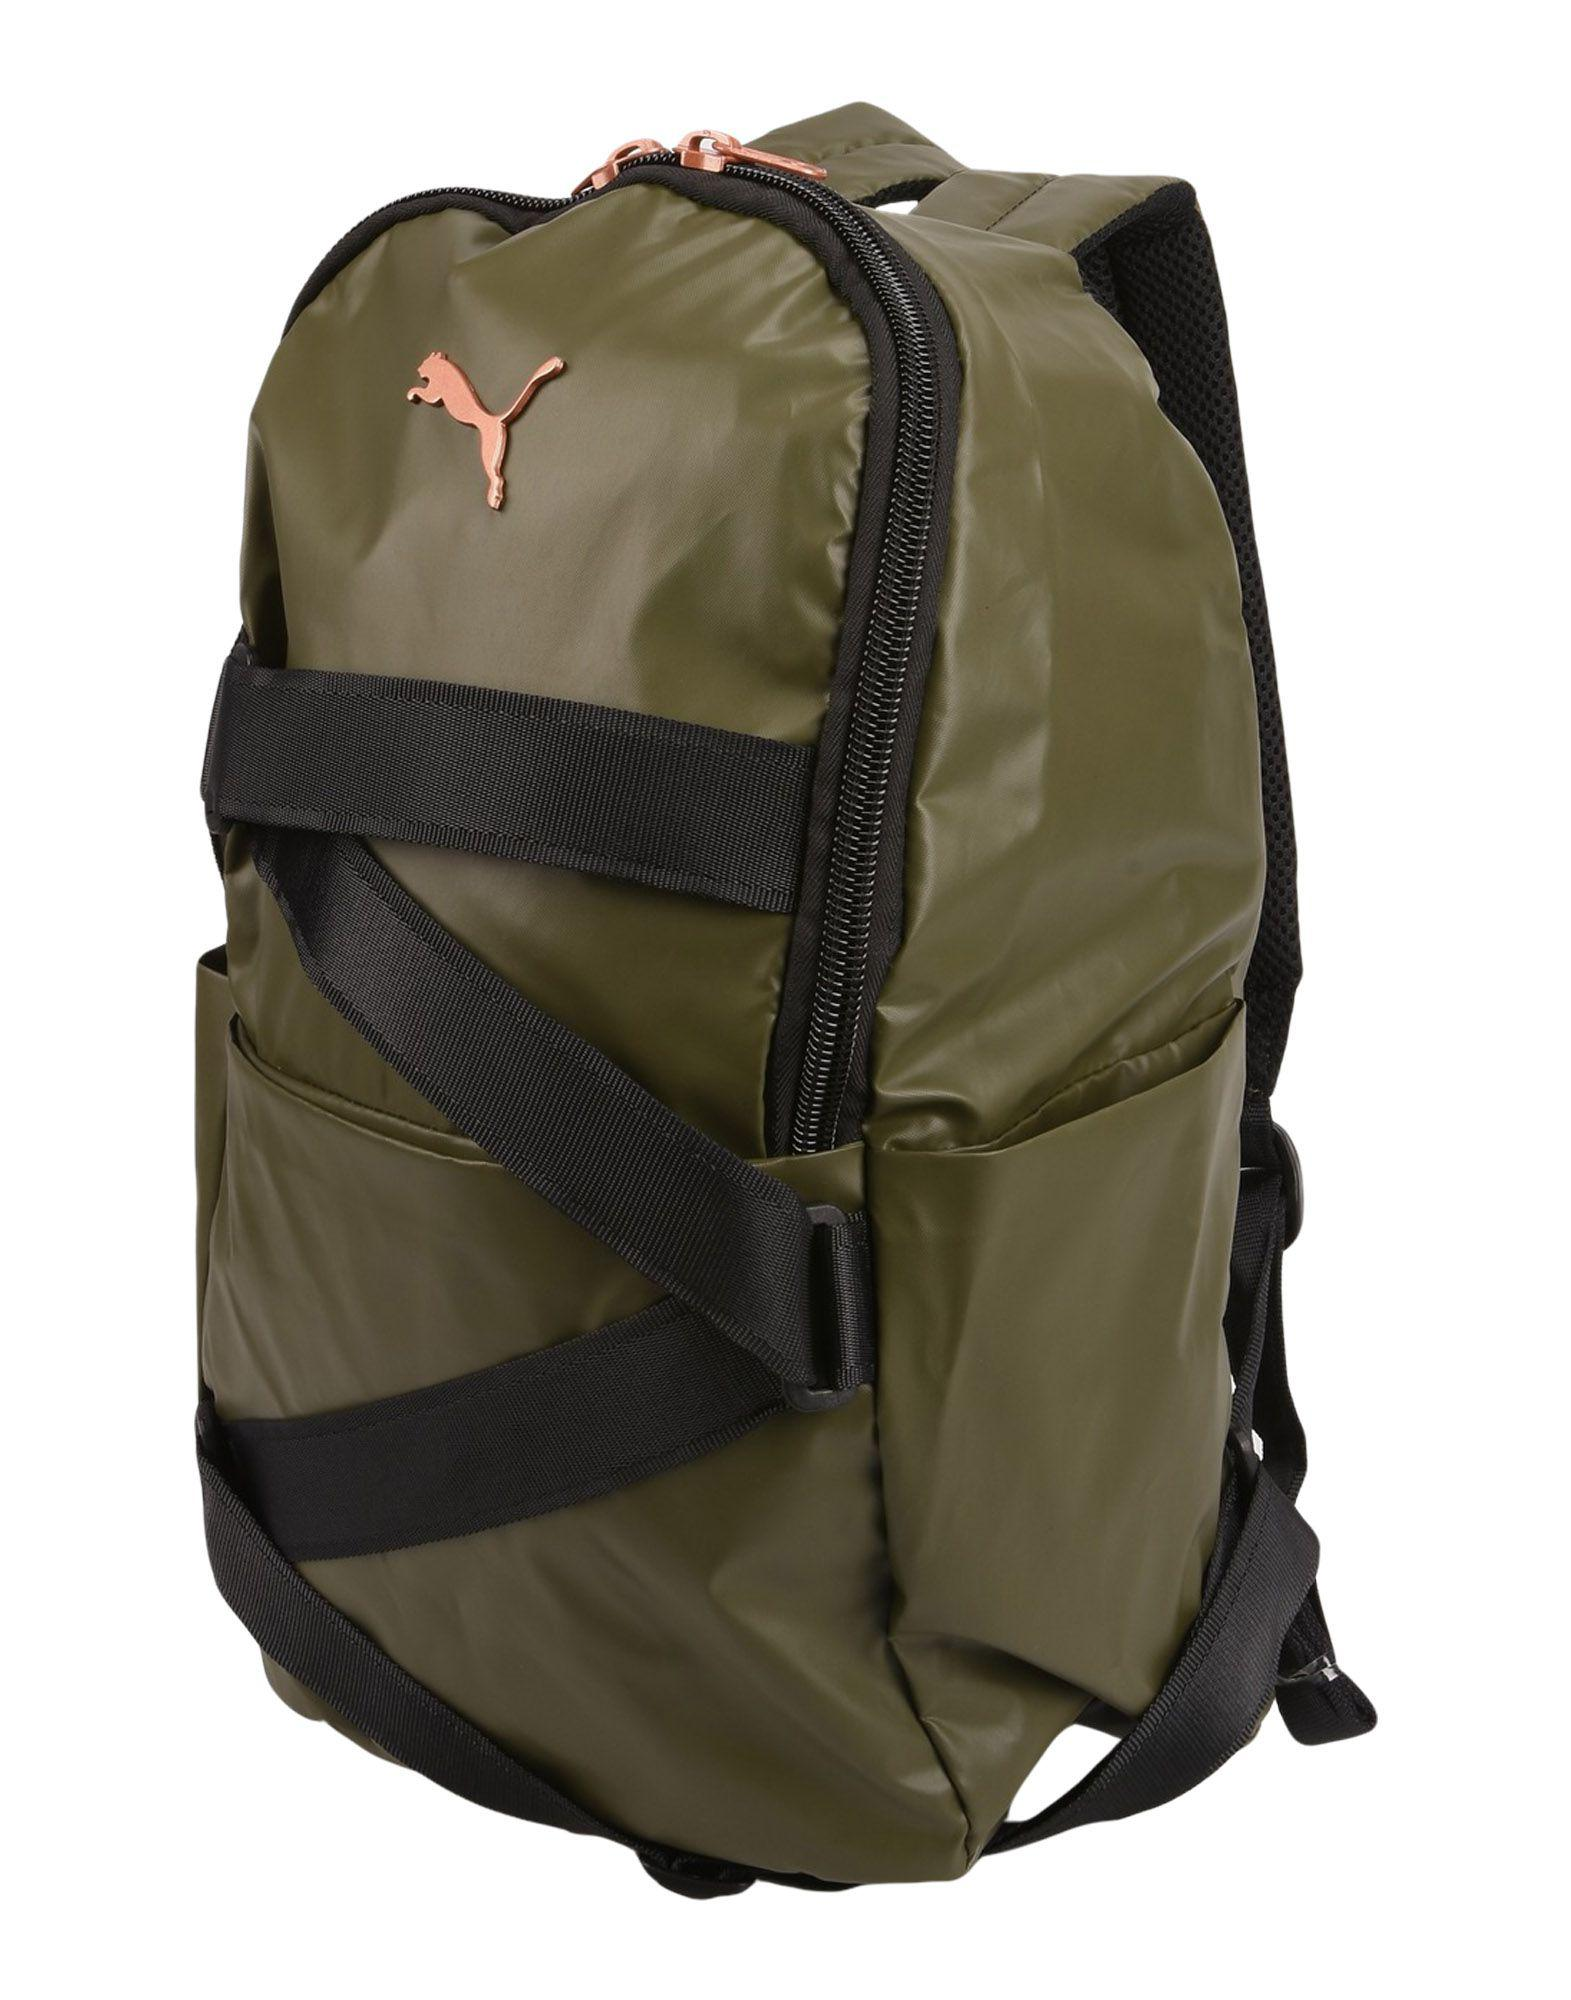 9933cc4619 PUMA Backpacks   Bum Bags in Green - Lyst